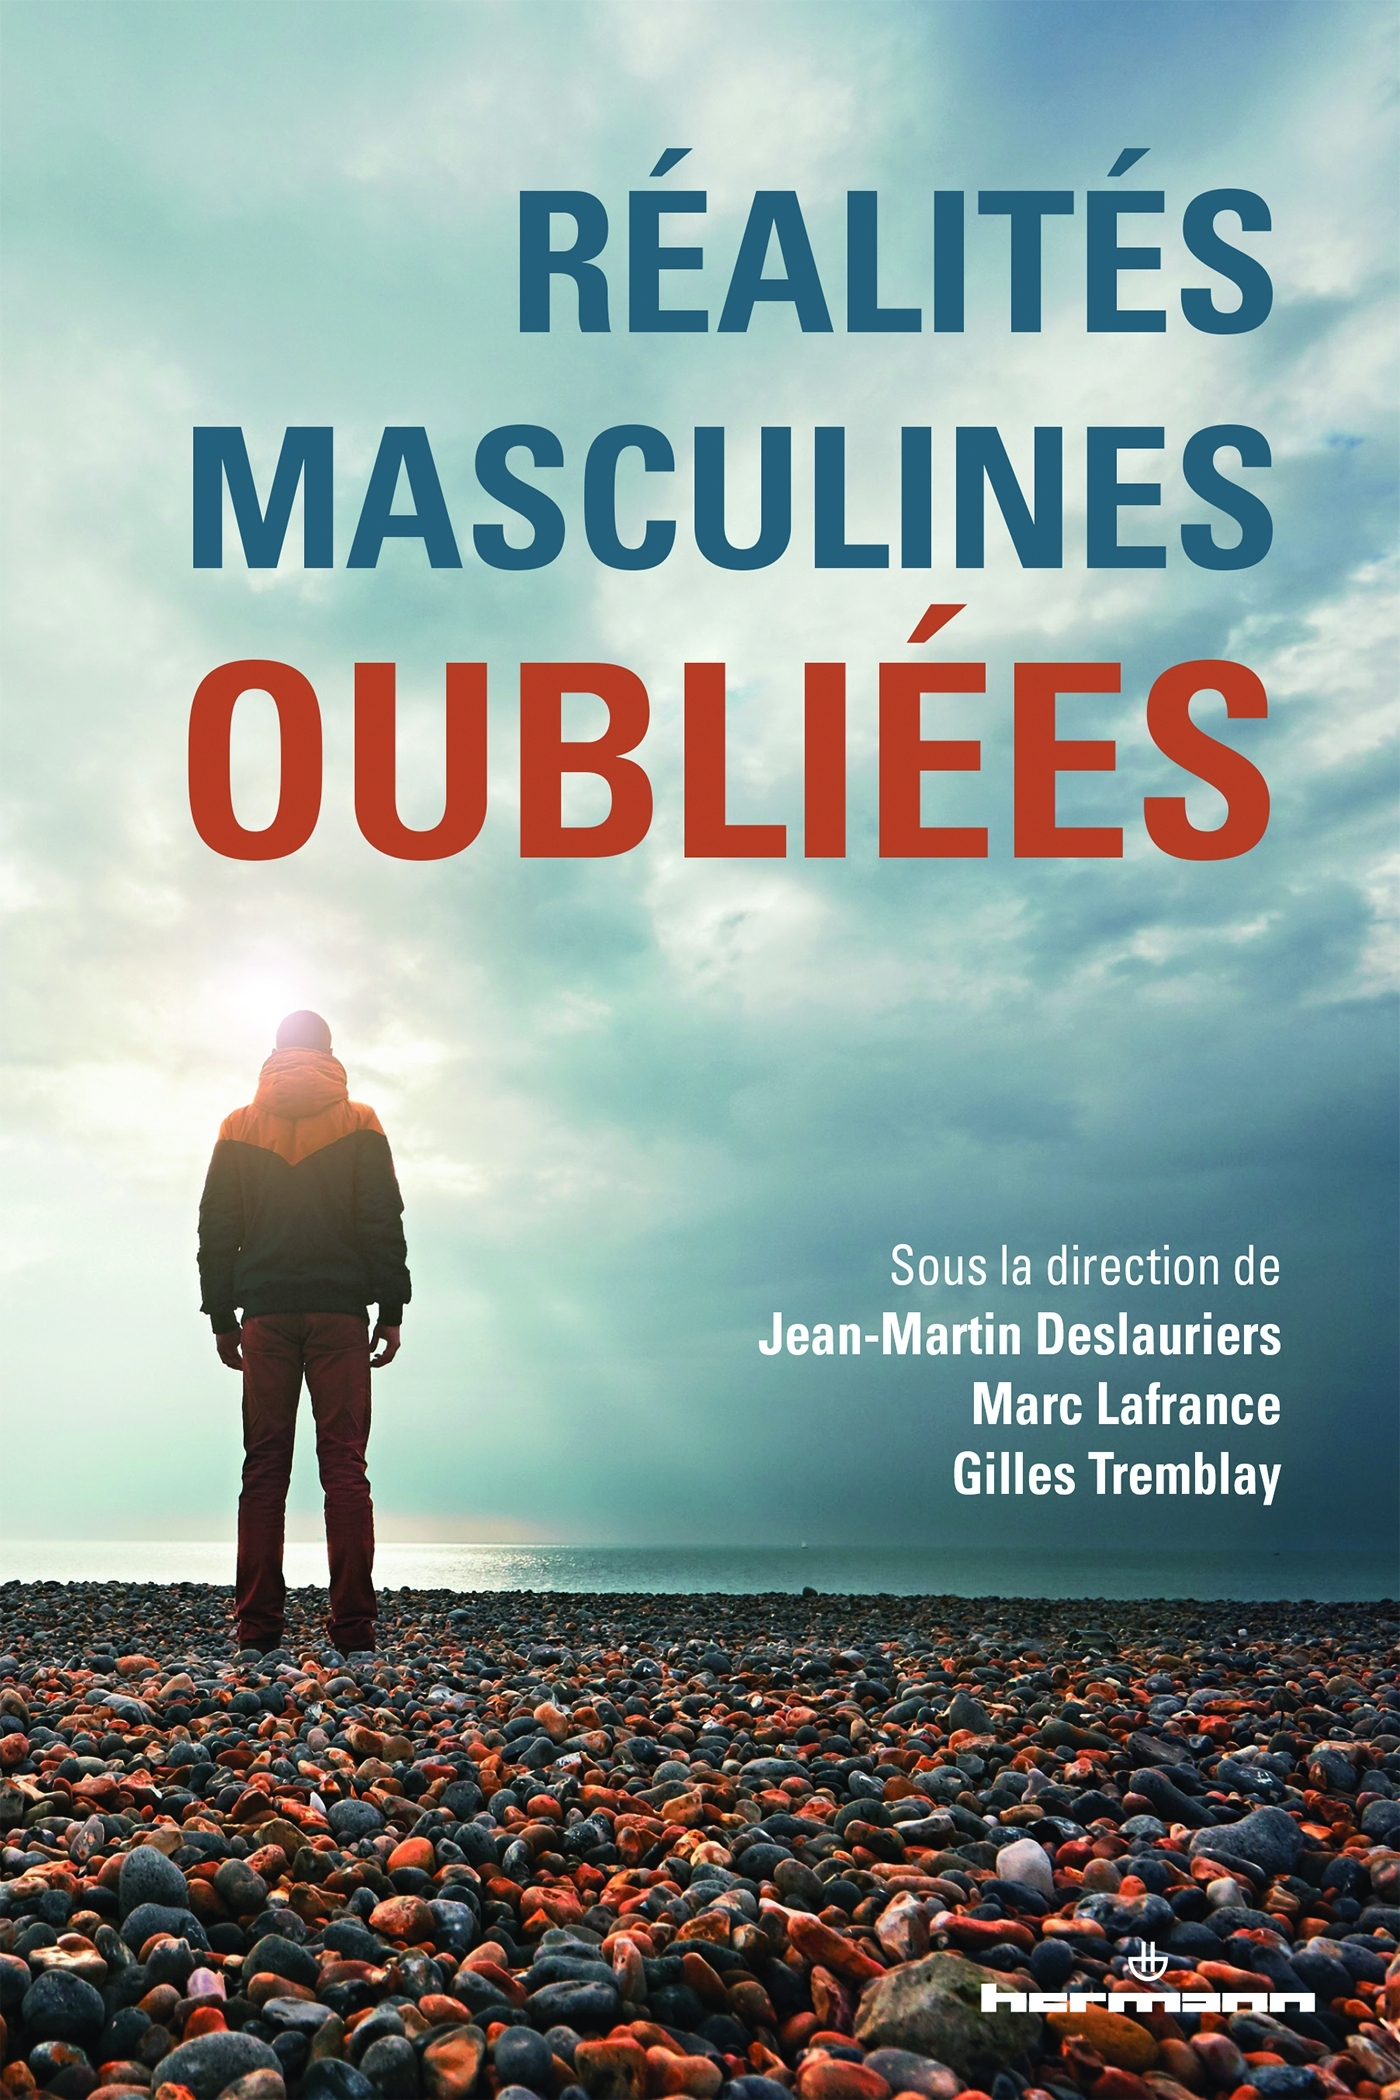 REALITES MASCULINES OUBLIEES